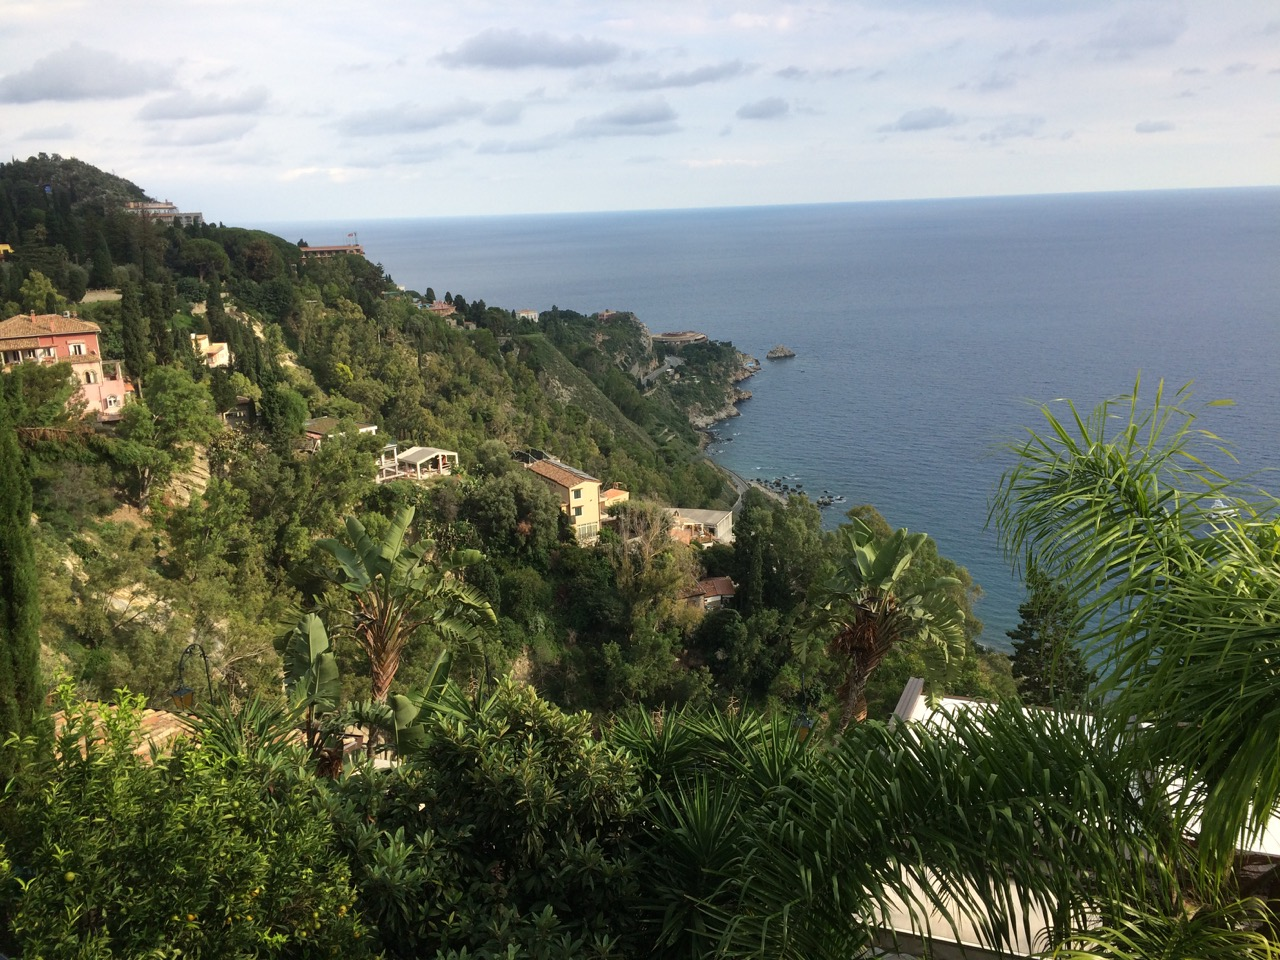 What draws visitors to Taormina